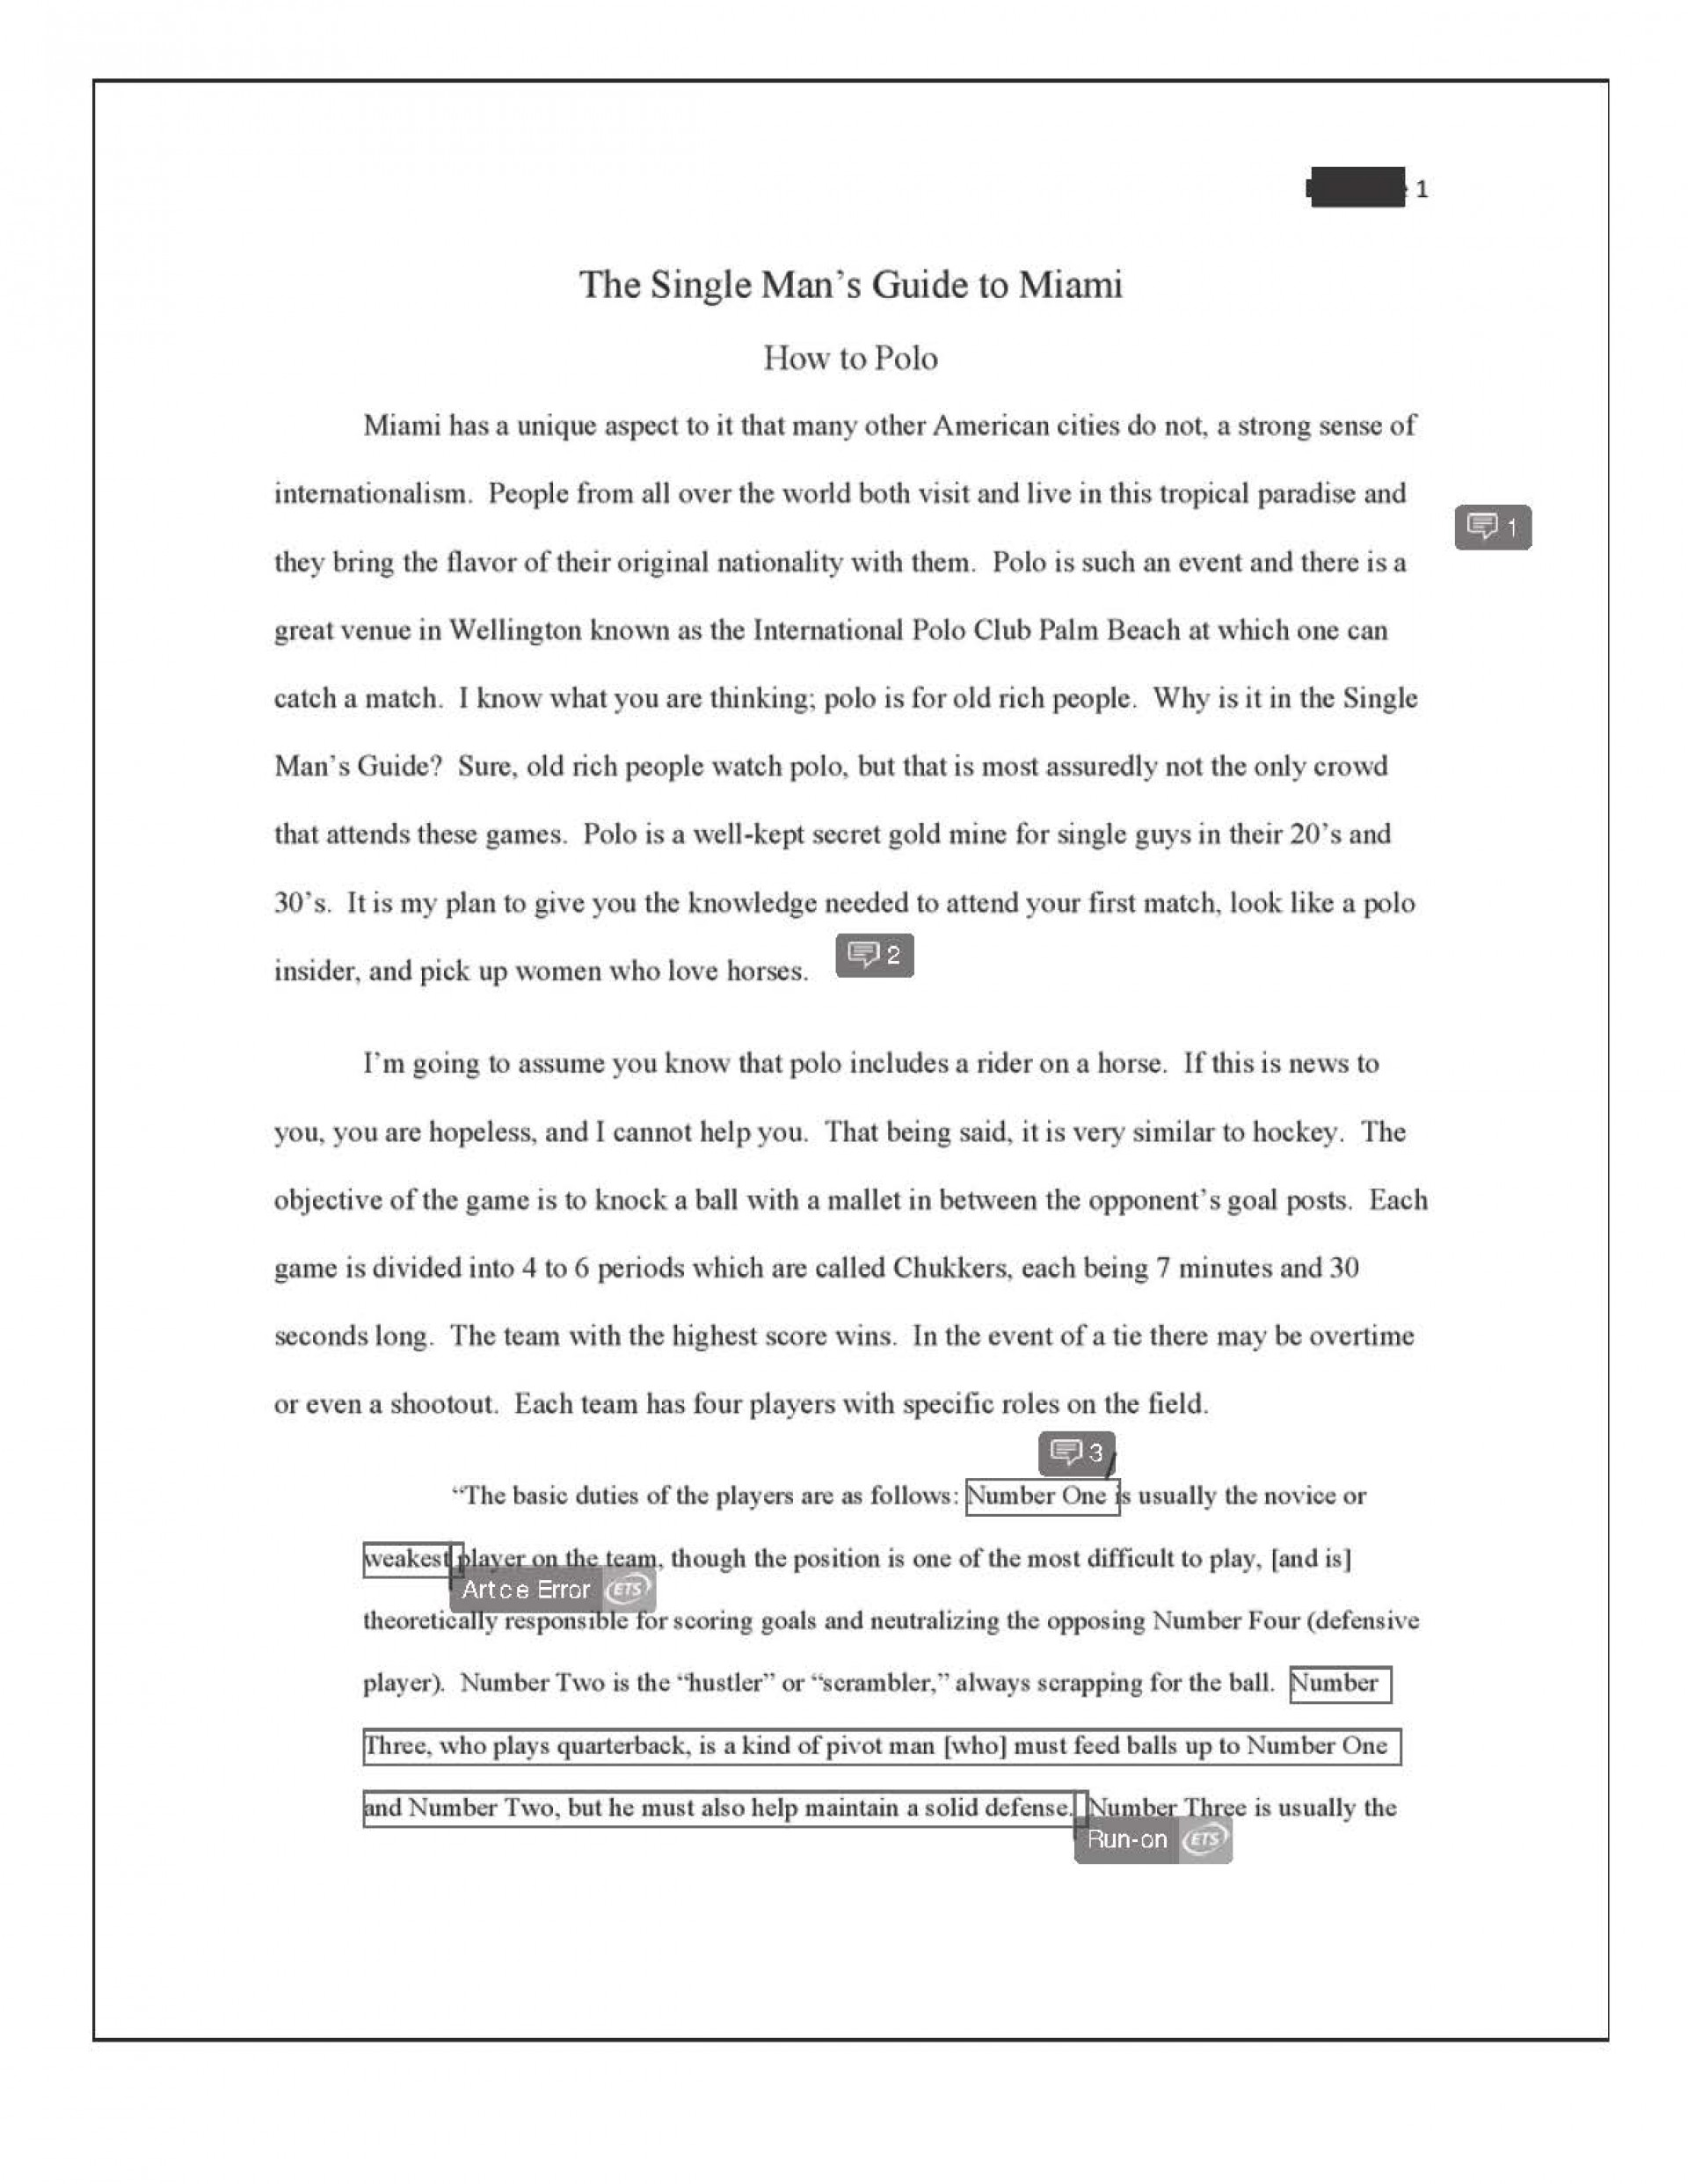 007 Informative Essay Kinds Of Writing Types Essays The Center In Hindi Final How To Polo Redacted P Pdf Task Slideshare Ppt Withs Wikipedia Dreaded Prompts 5th Grade 9th Graphic Organizer 1920